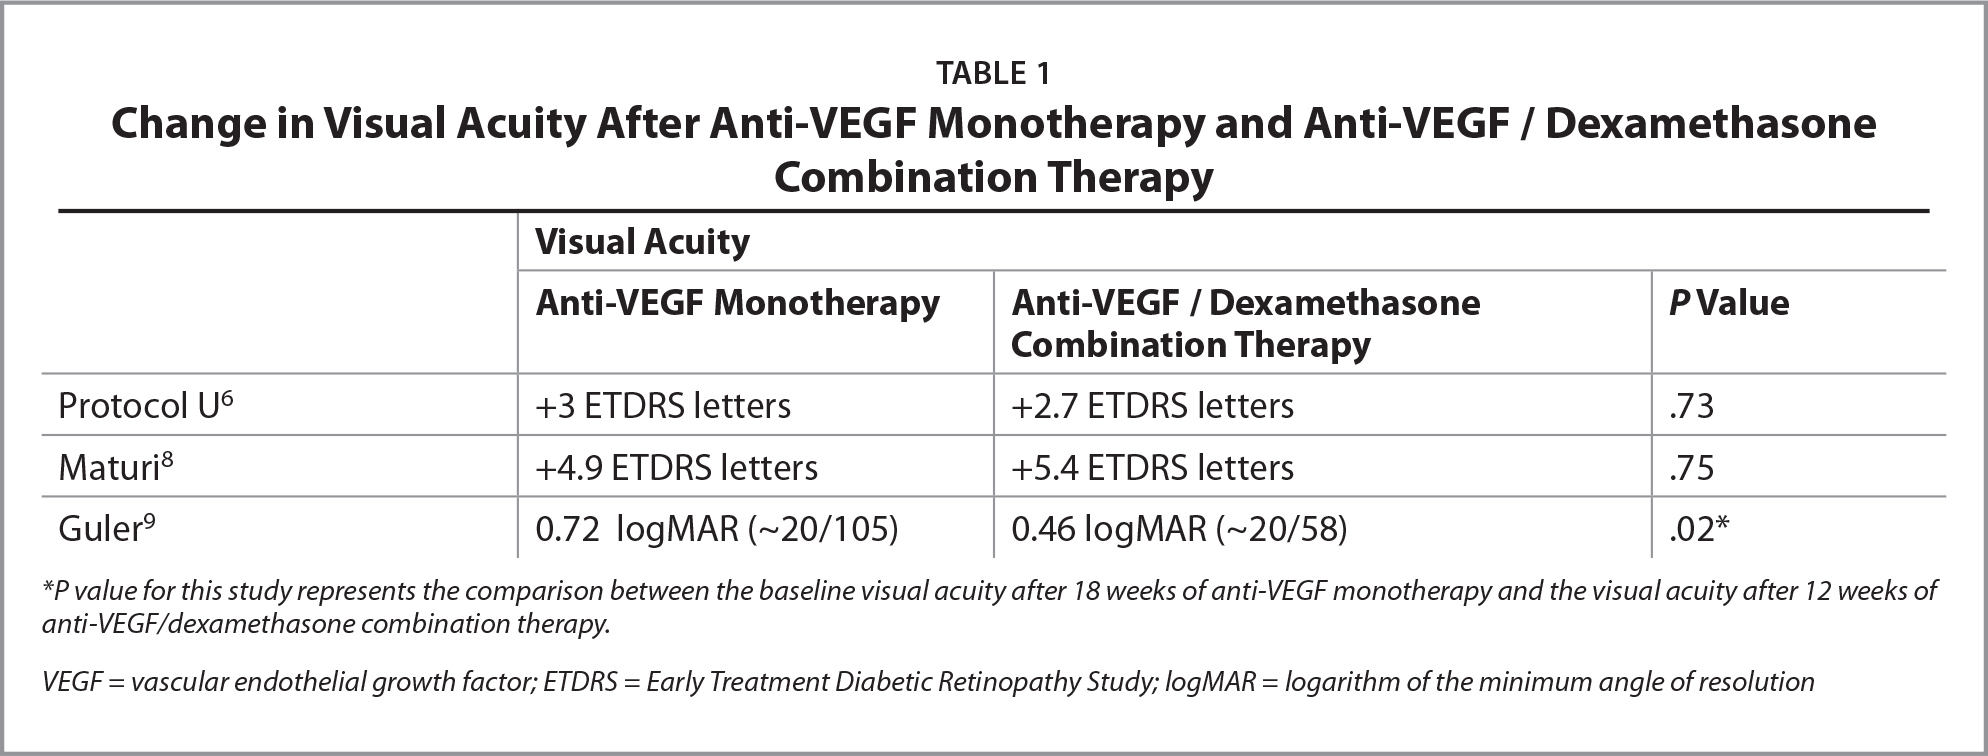 Change in Visual Acuity After Anti-VEGF Monotherapy and Anti-VEGF / Dexamethasone Combination Therapy